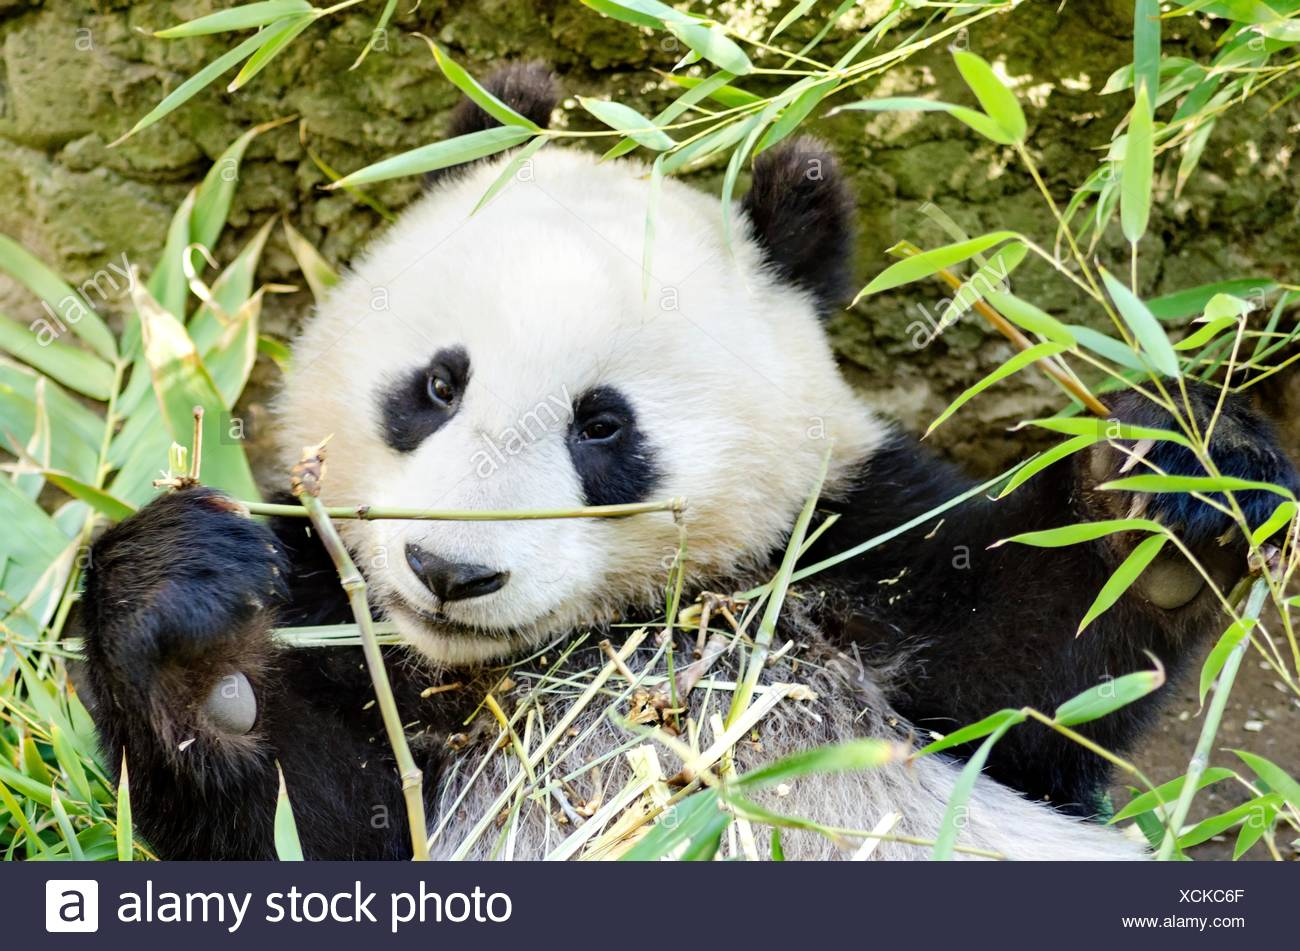 A Cute Adorable Lazy Baby Giant Panda Bear Eating Bamboo The Ailuropoda Melanoleuca Is Distinct By The Large Black Patches Around Its Eyes Over The Ears And Across Its Round Body Stock